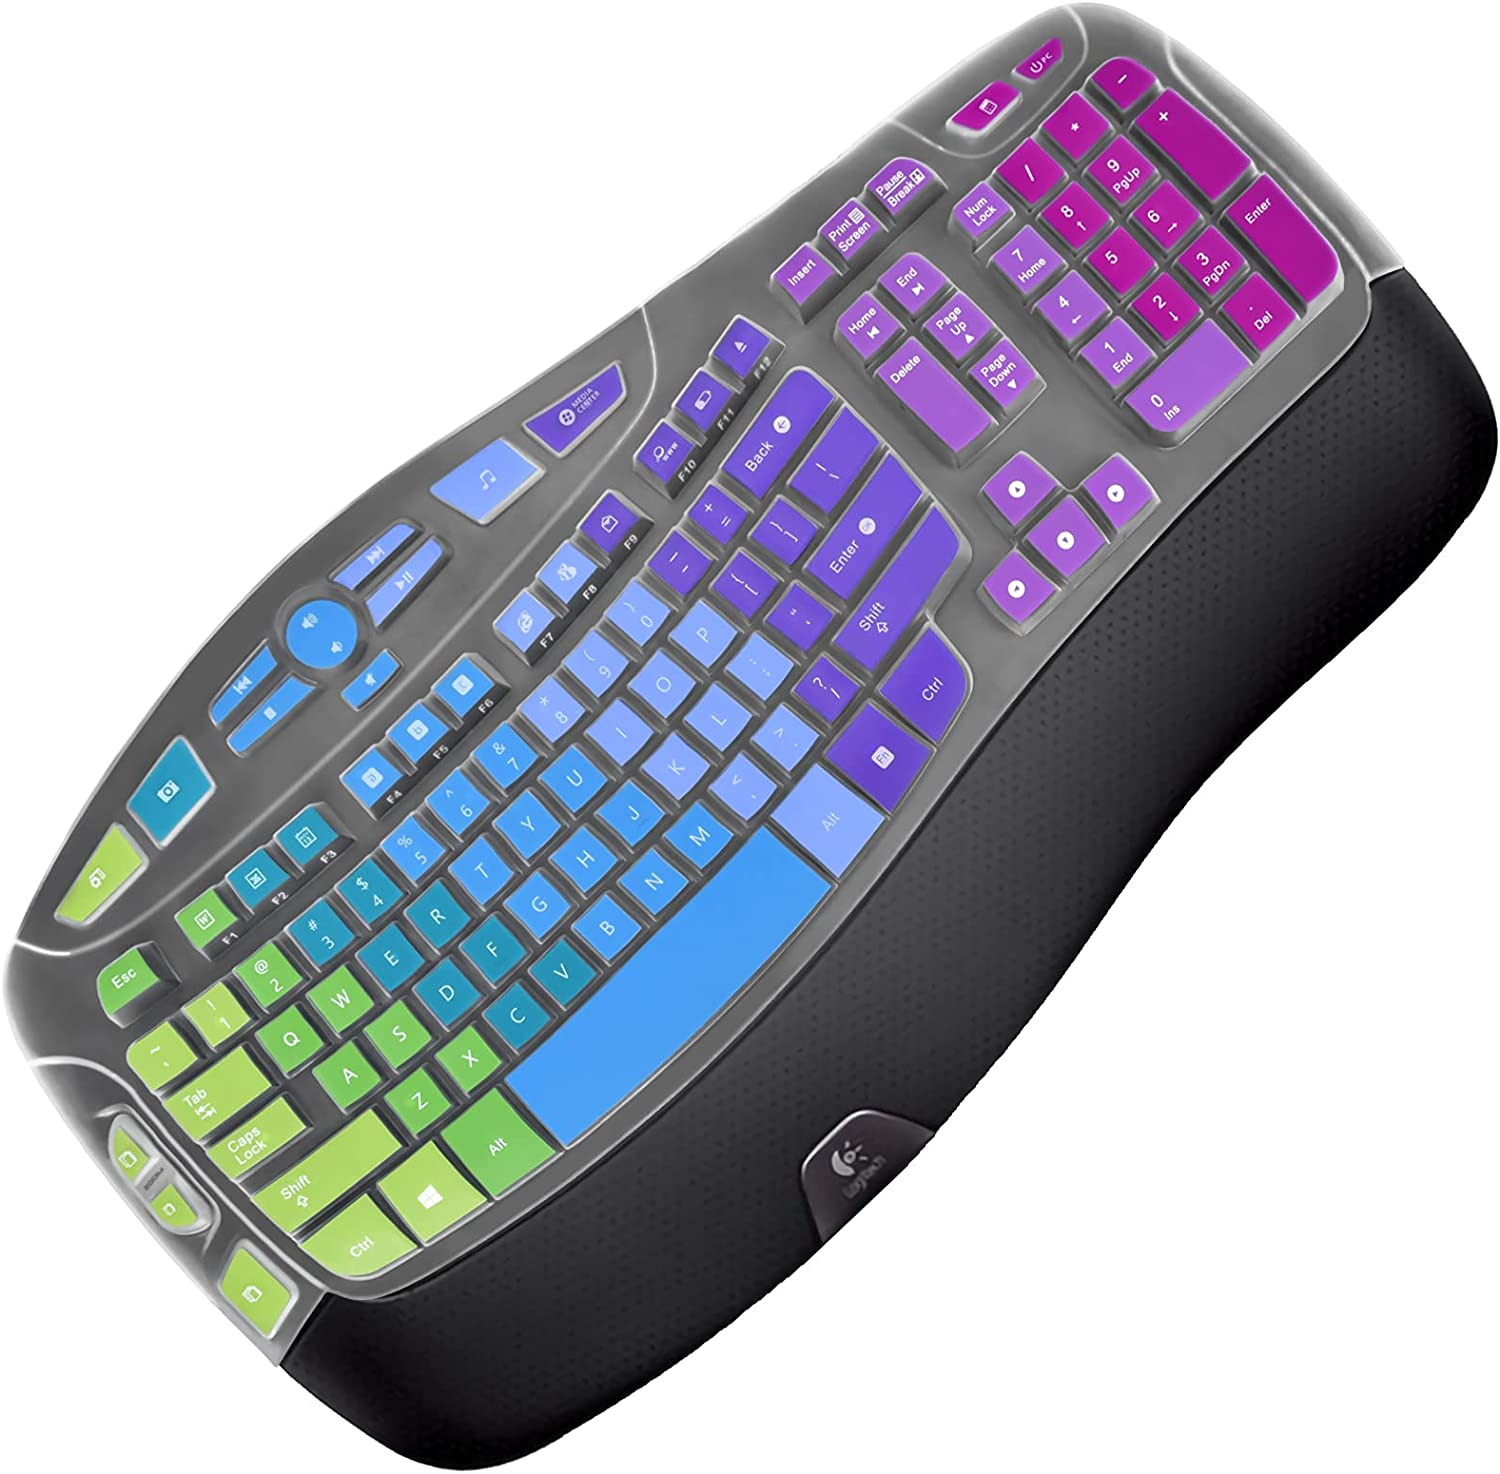 Silicone Keyboard Cover Skin Compatible with Excellent K350 Super special price Er MK570 MK550